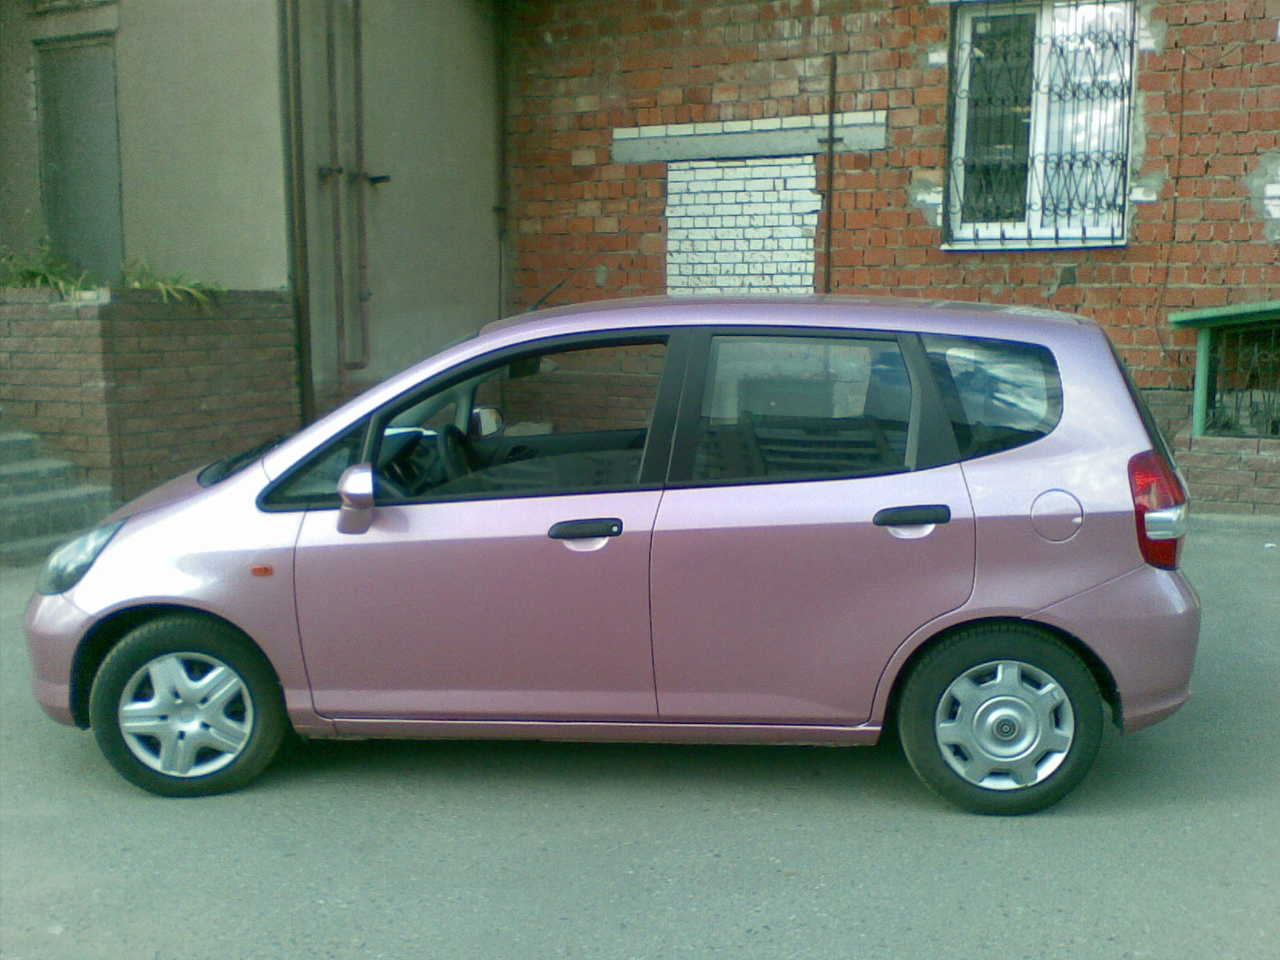 2002 honda jazz pictures gasoline ff manual for sale. Black Bedroom Furniture Sets. Home Design Ideas